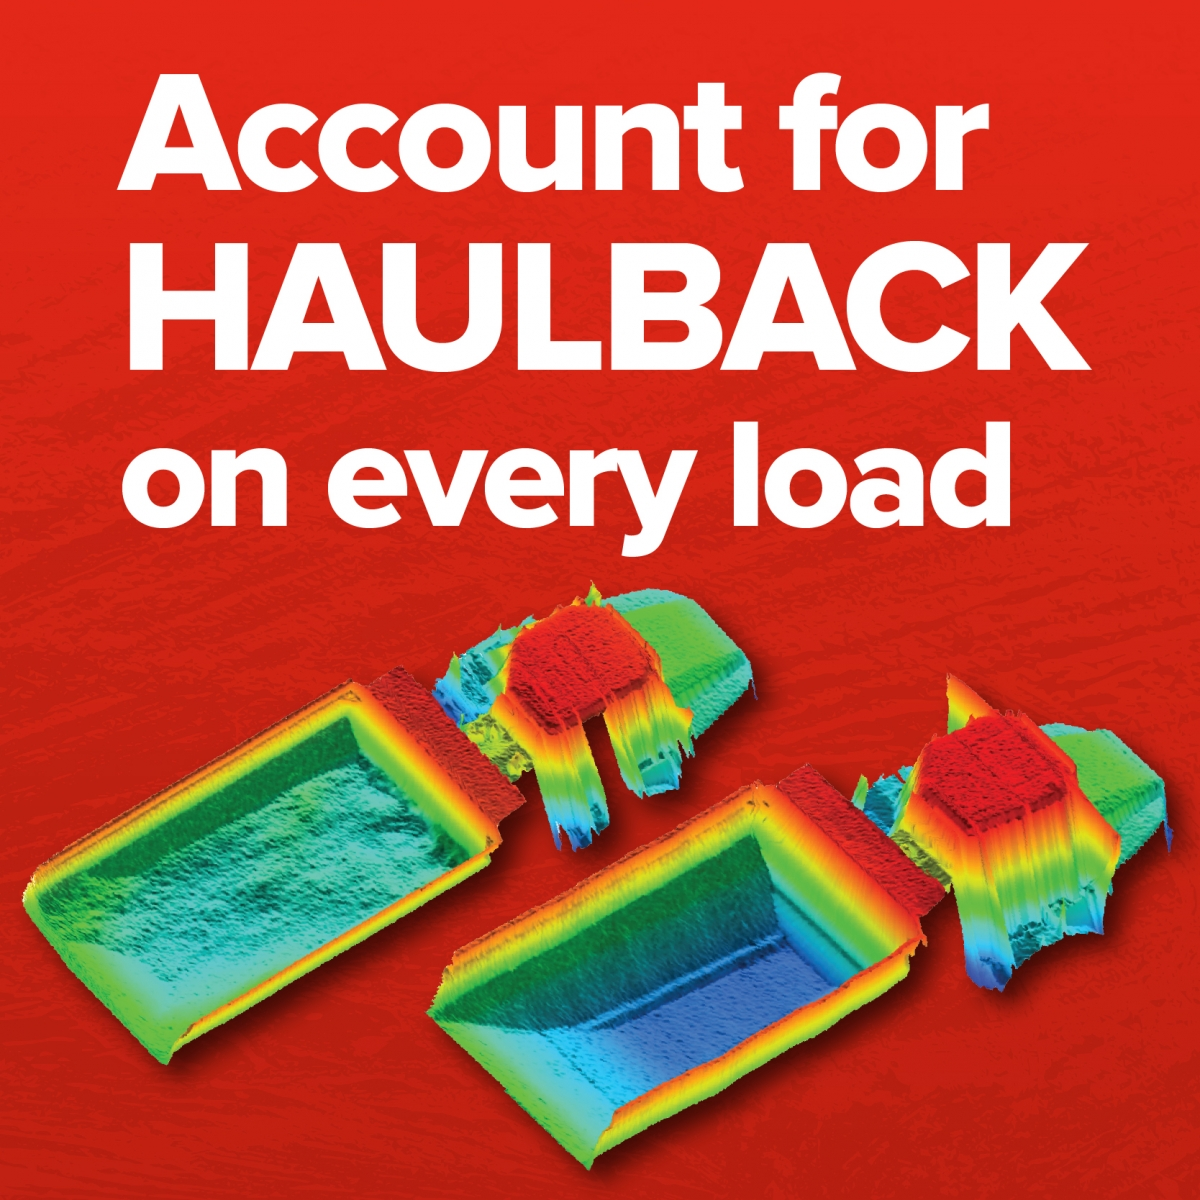 Account for HAULBACK on every load